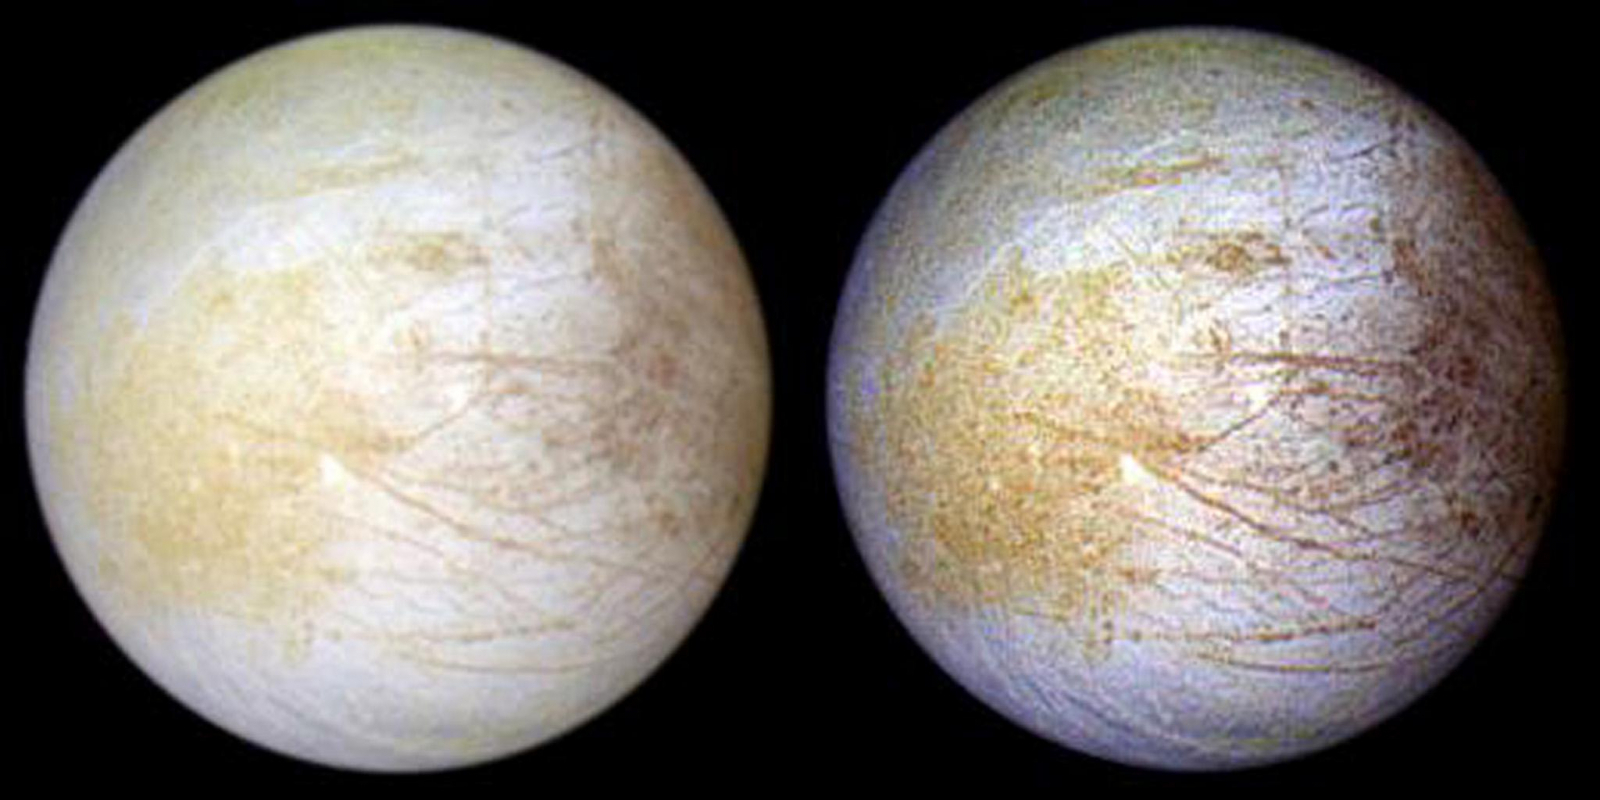 Yeah, there's totally water vapor on Jupiter's moon Europa